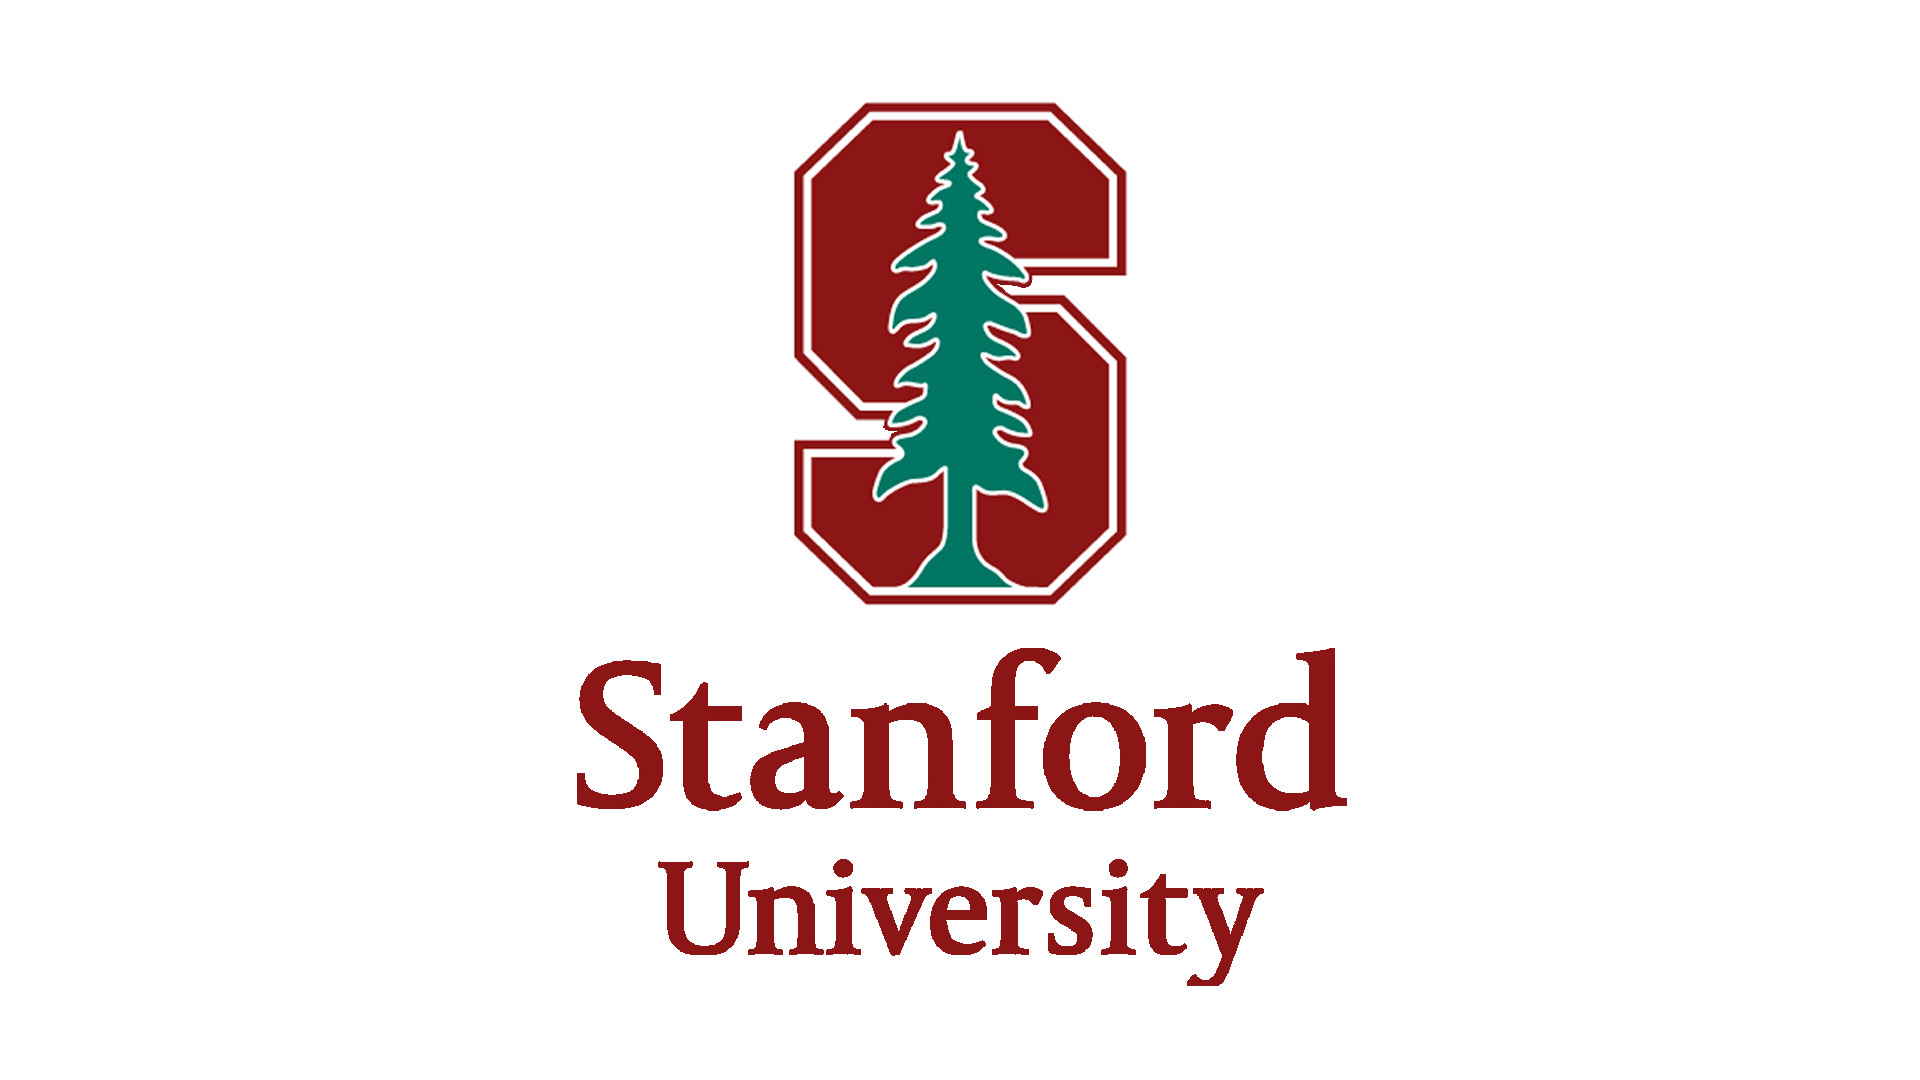 Stanford University online course mathematical thinking